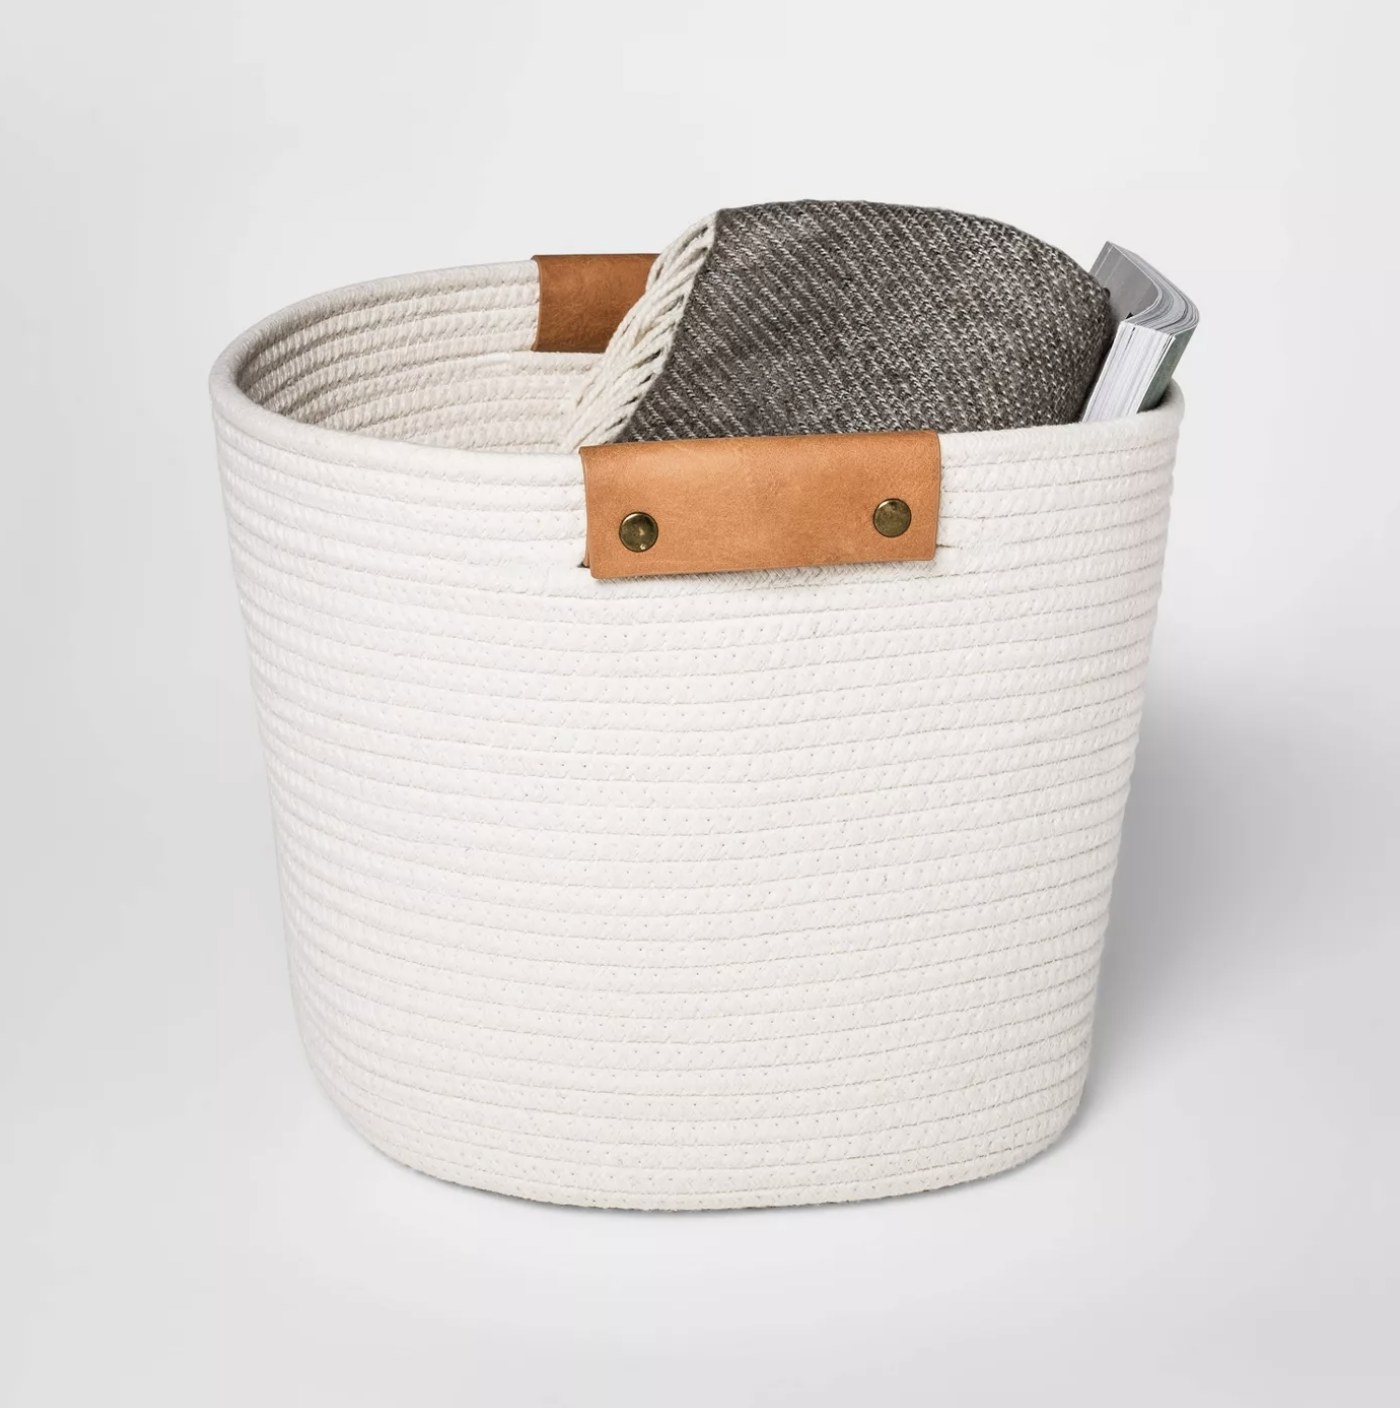 The cream rope basket